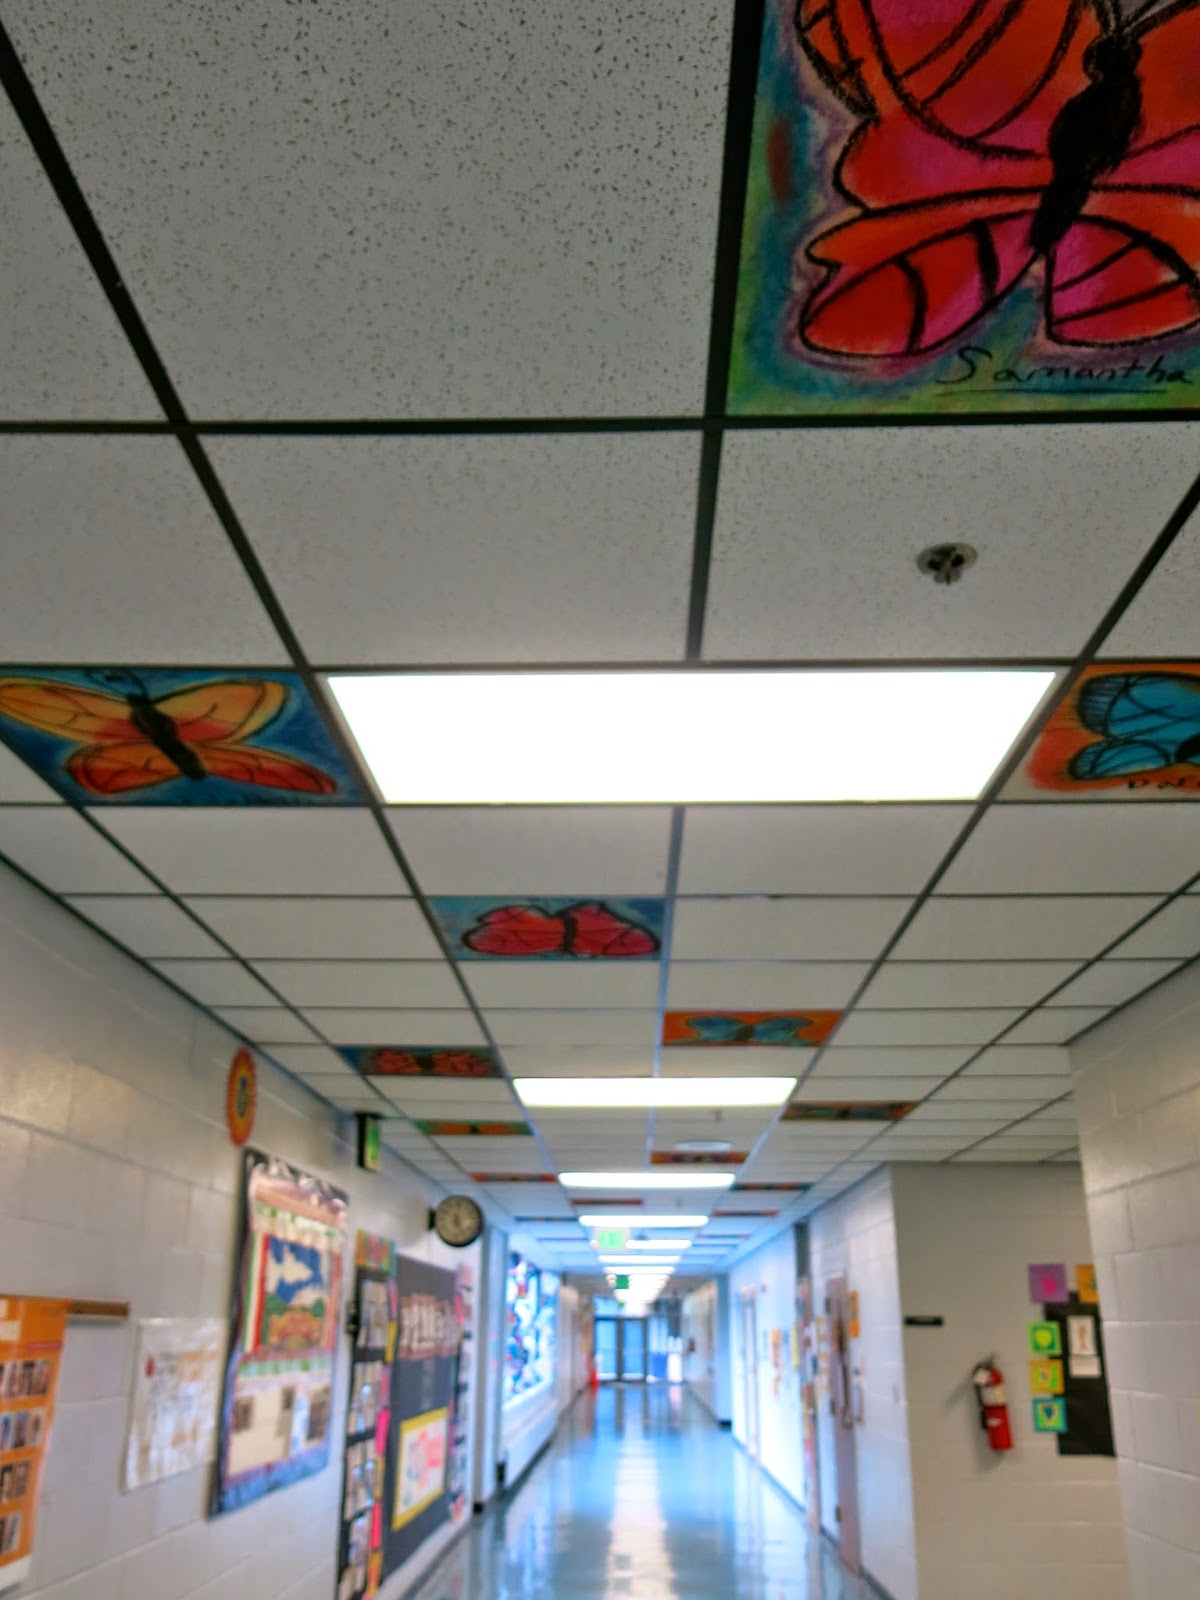 Cassie stephens ceiling tile art now the kids are asking what else can we make for the ceiling dailygadgetfo Choice Image